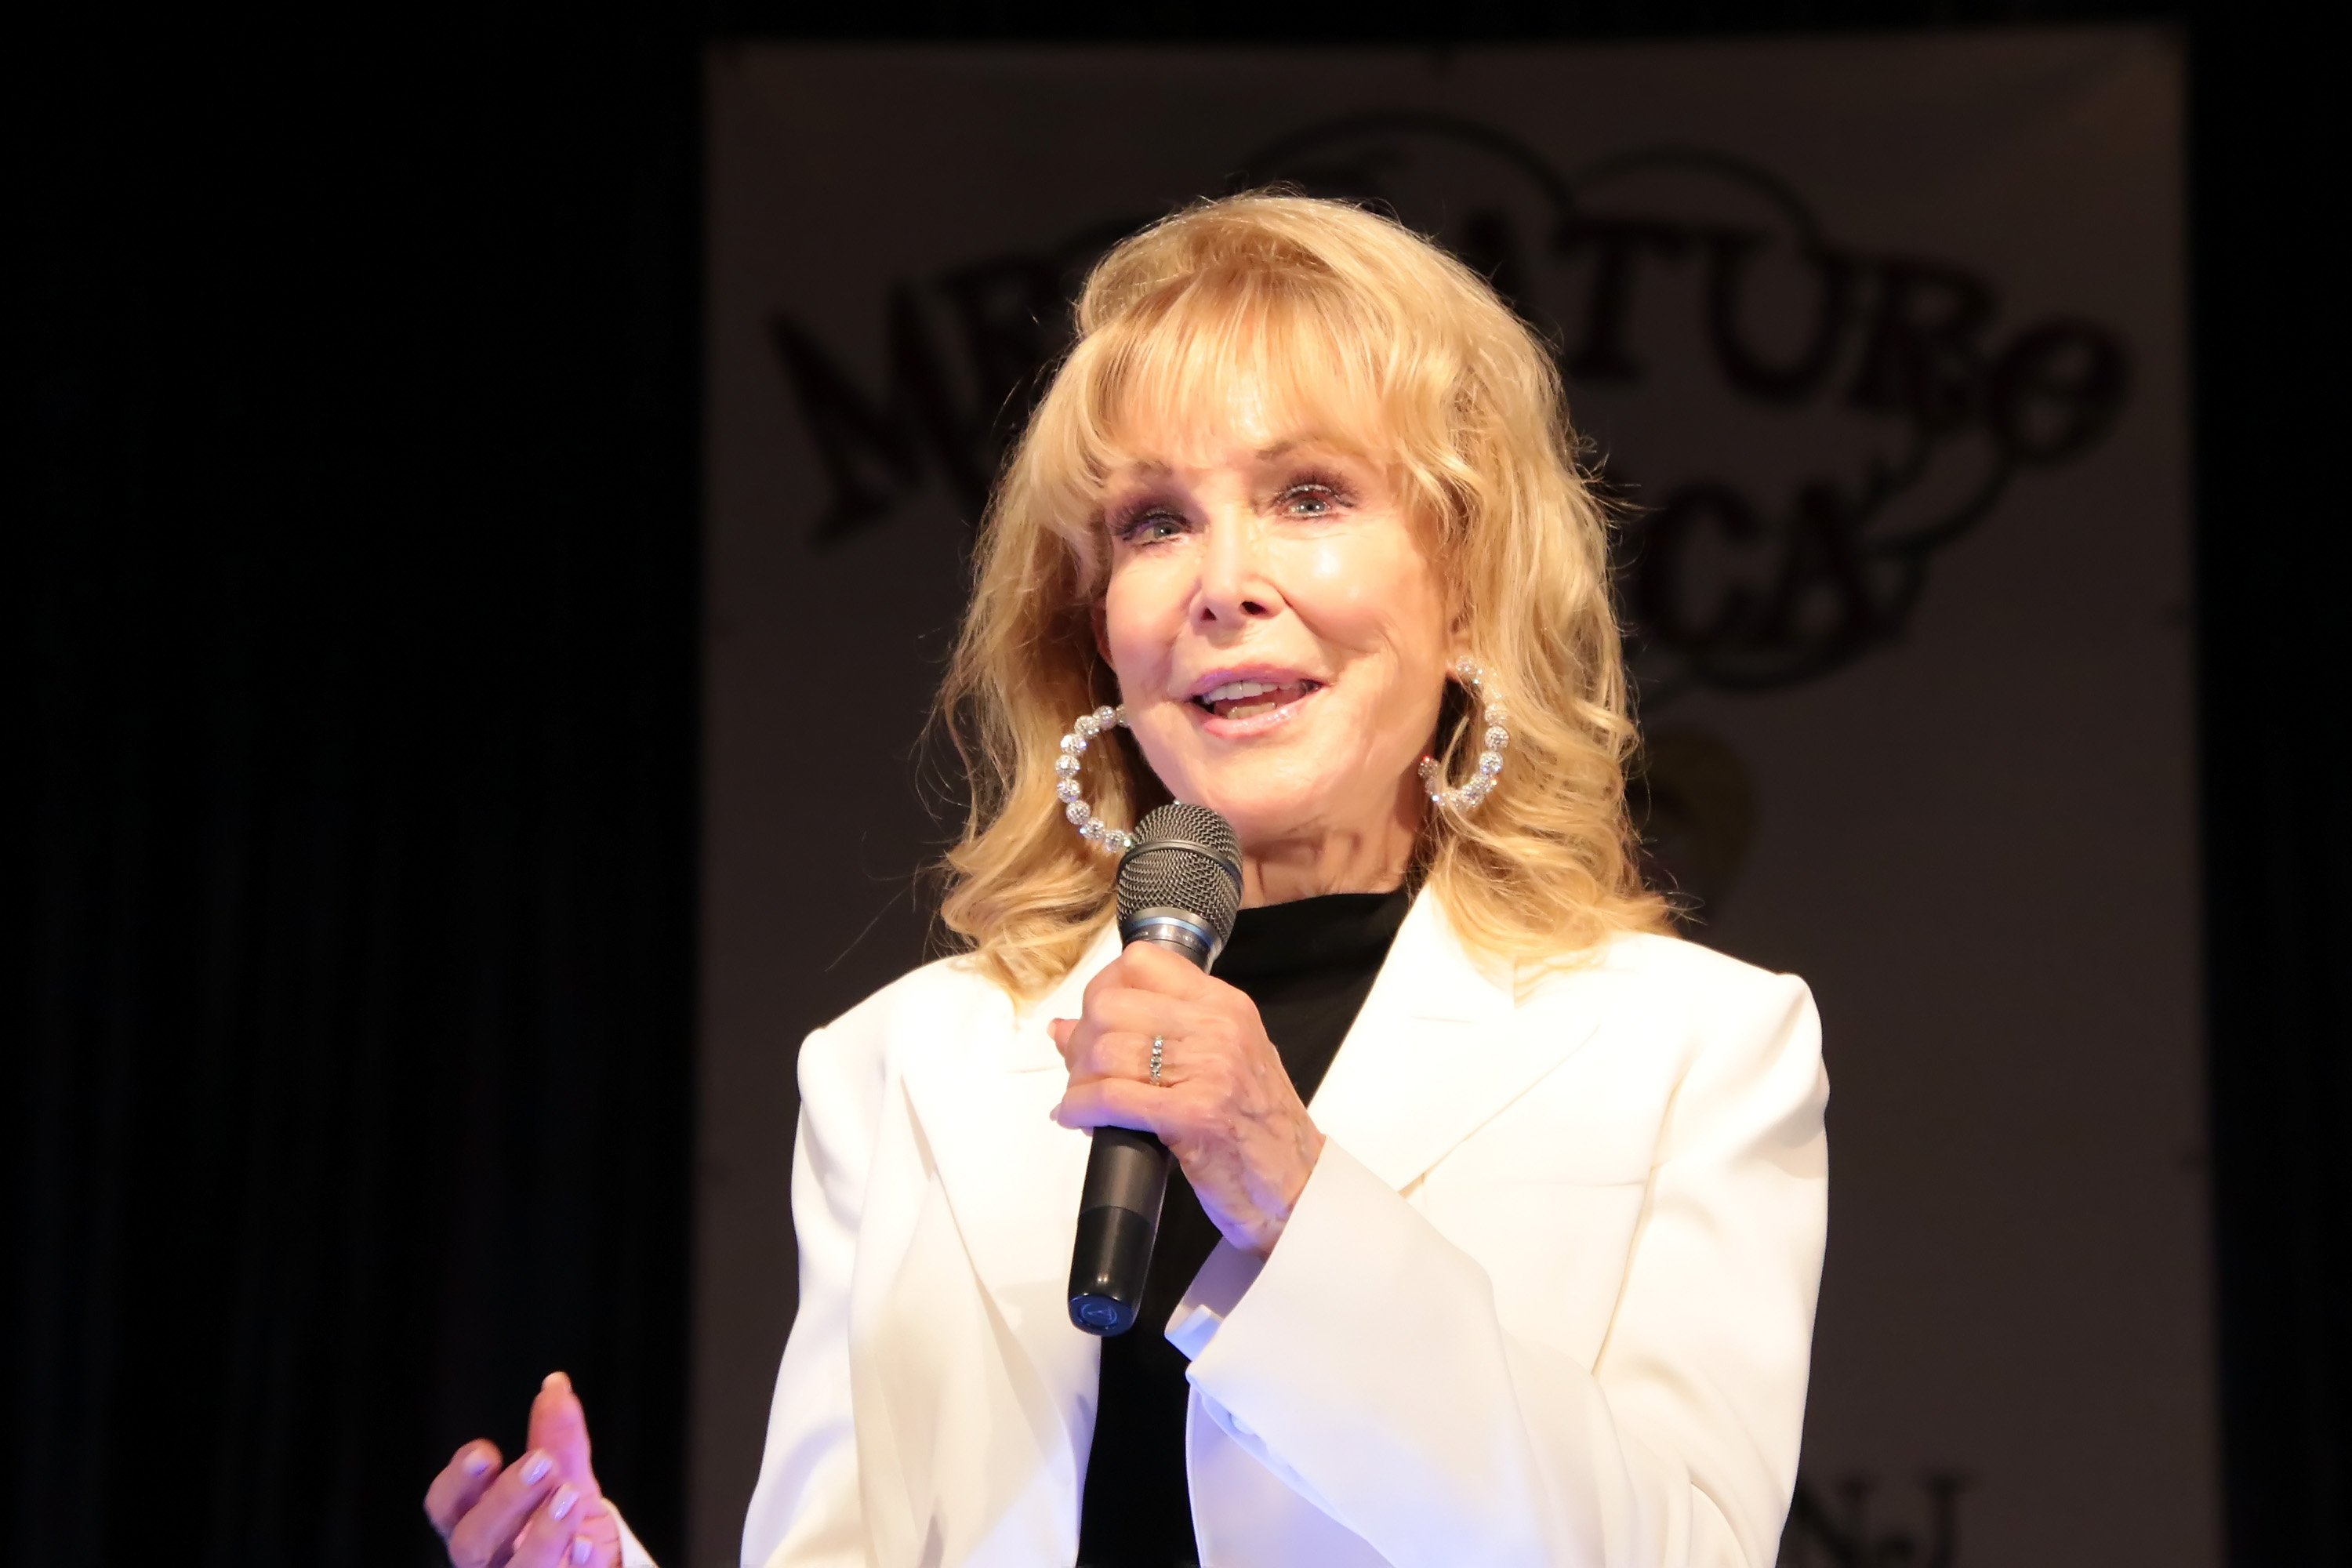 Barbara Eden, Special Guest & Emcee hosts the 2019 Mr. Mature America Pageant at the at Ocean City Music Pier on April 13, 2019 in Ocean City, New Jersey.| Source: Getty Images